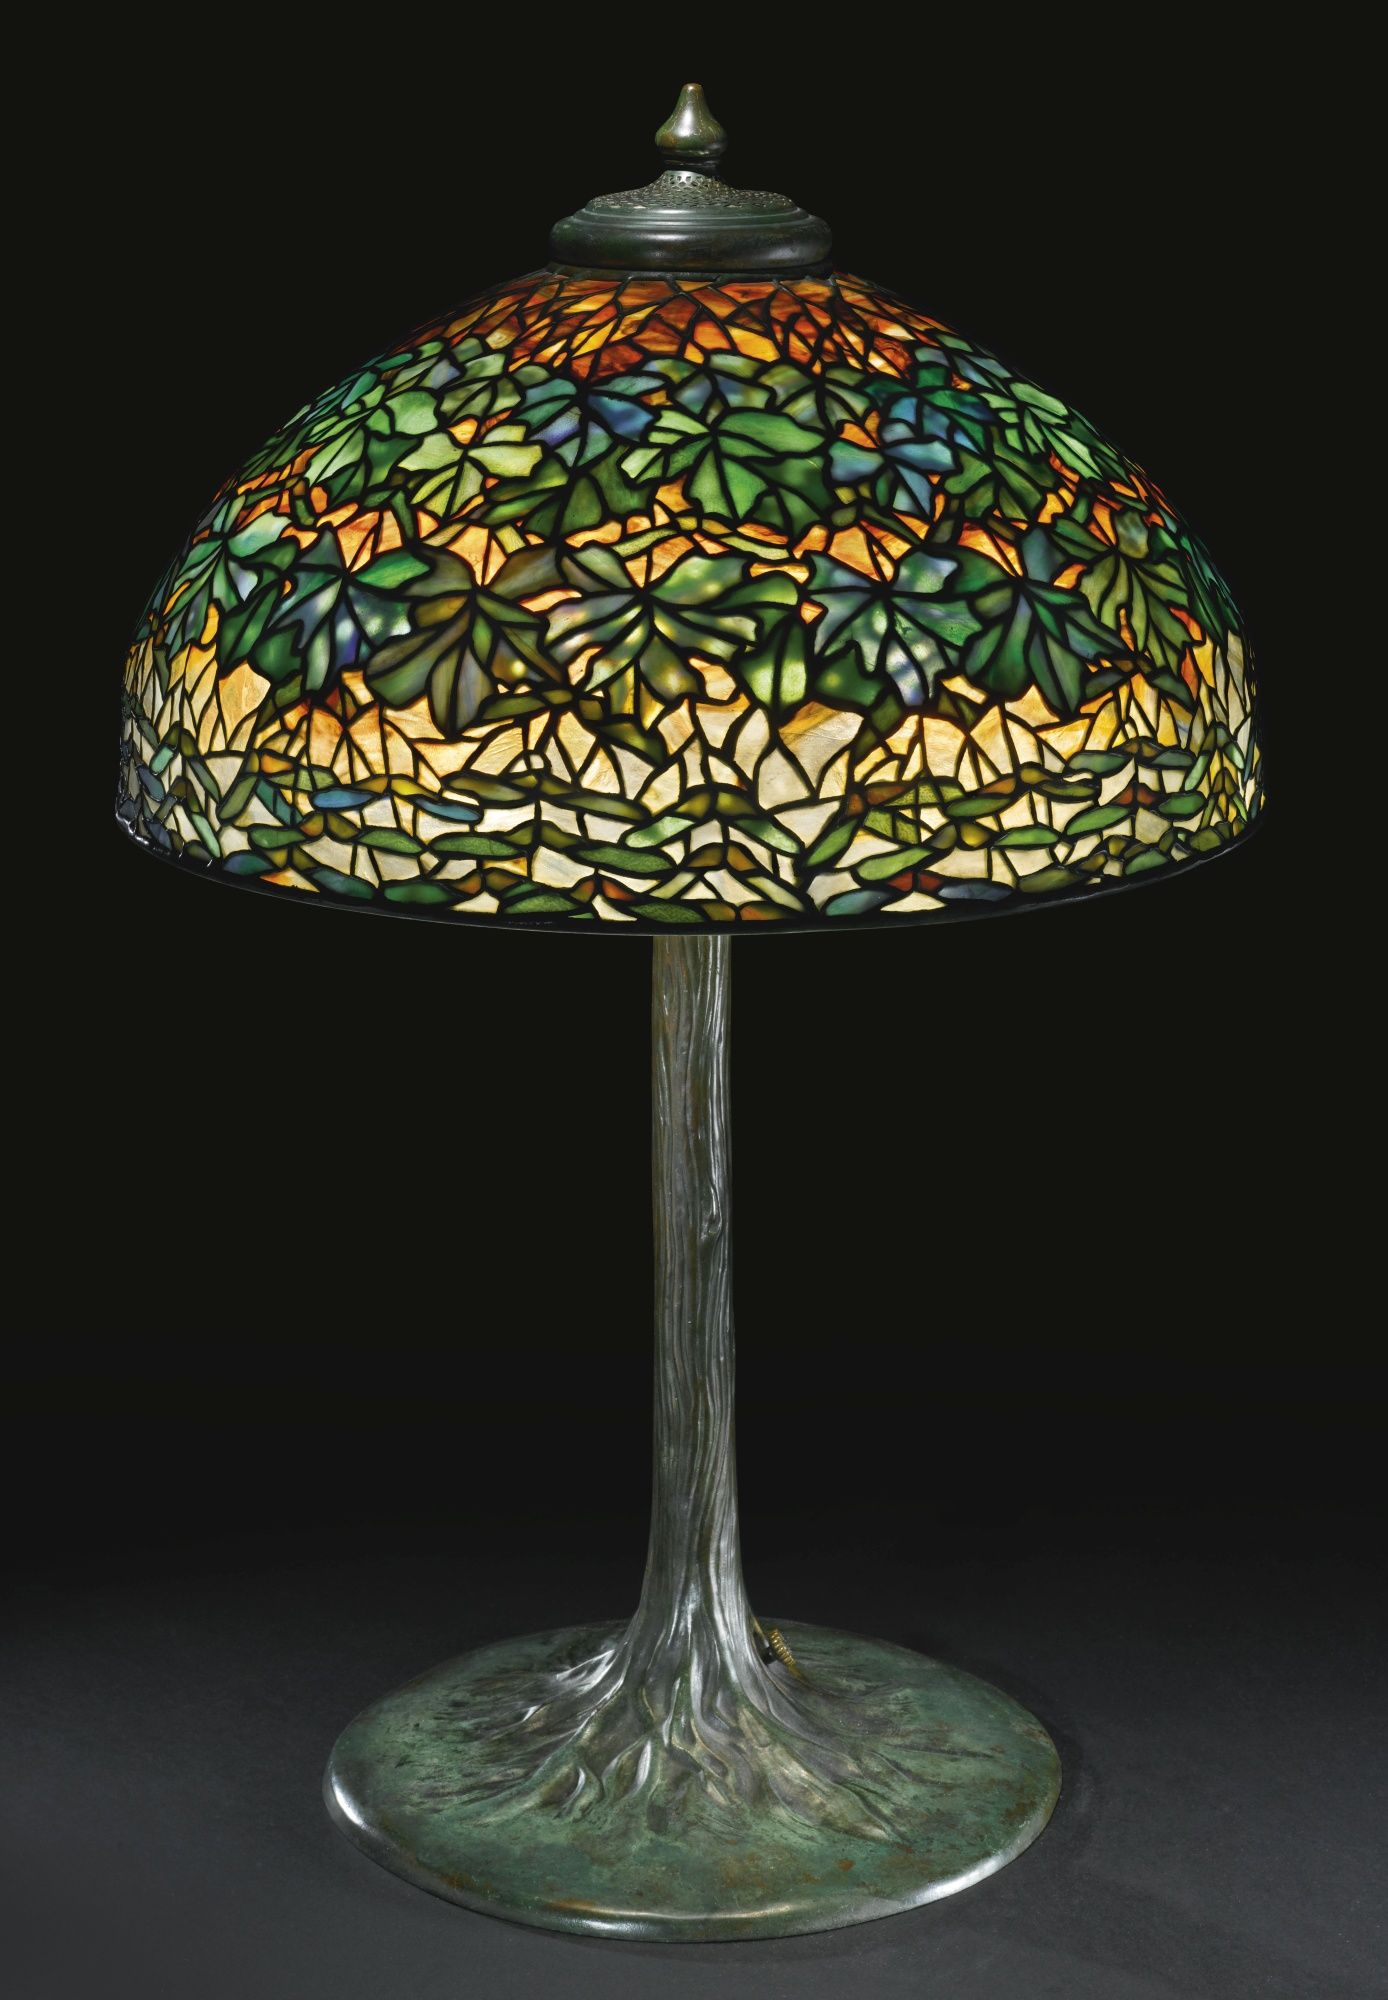 Tiffany Studios Lot Tiffany Style Lamp Stained Glass Lamps Tiffany Lamps